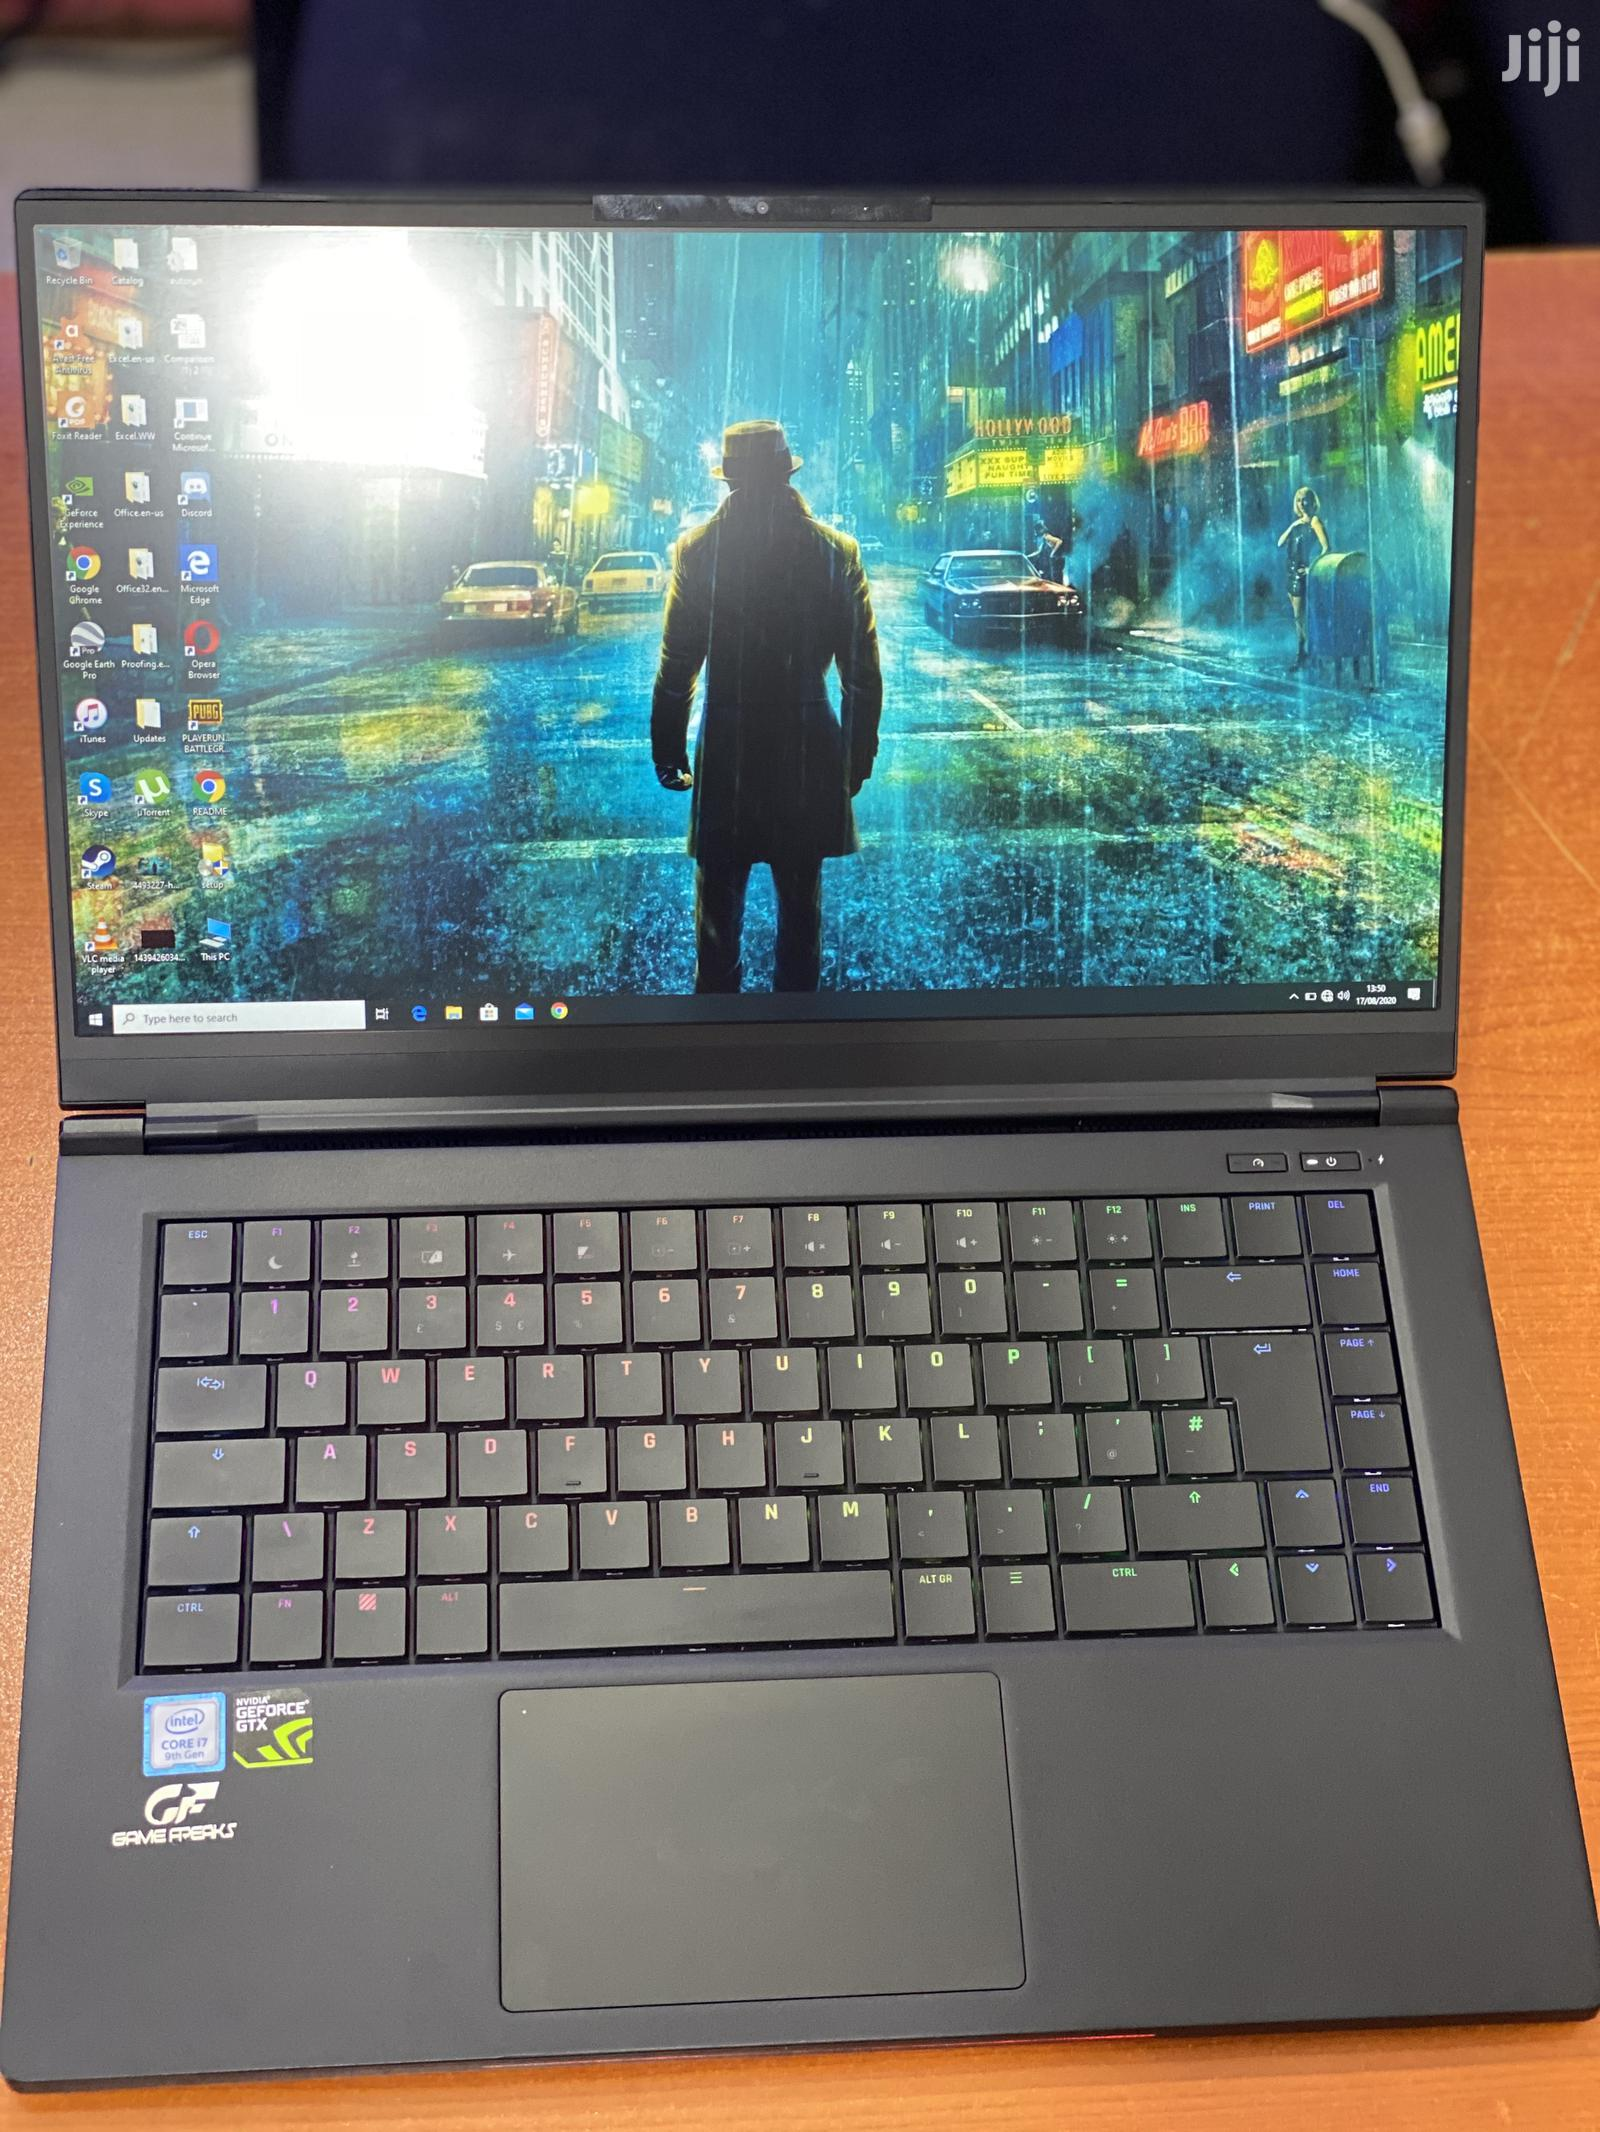 New Laptop Razer Blade Advanced 16GB Intel Core I7 SSHD (Hybrid) 1T | Laptops & Computers for sale in Kampala, Central Region, Uganda